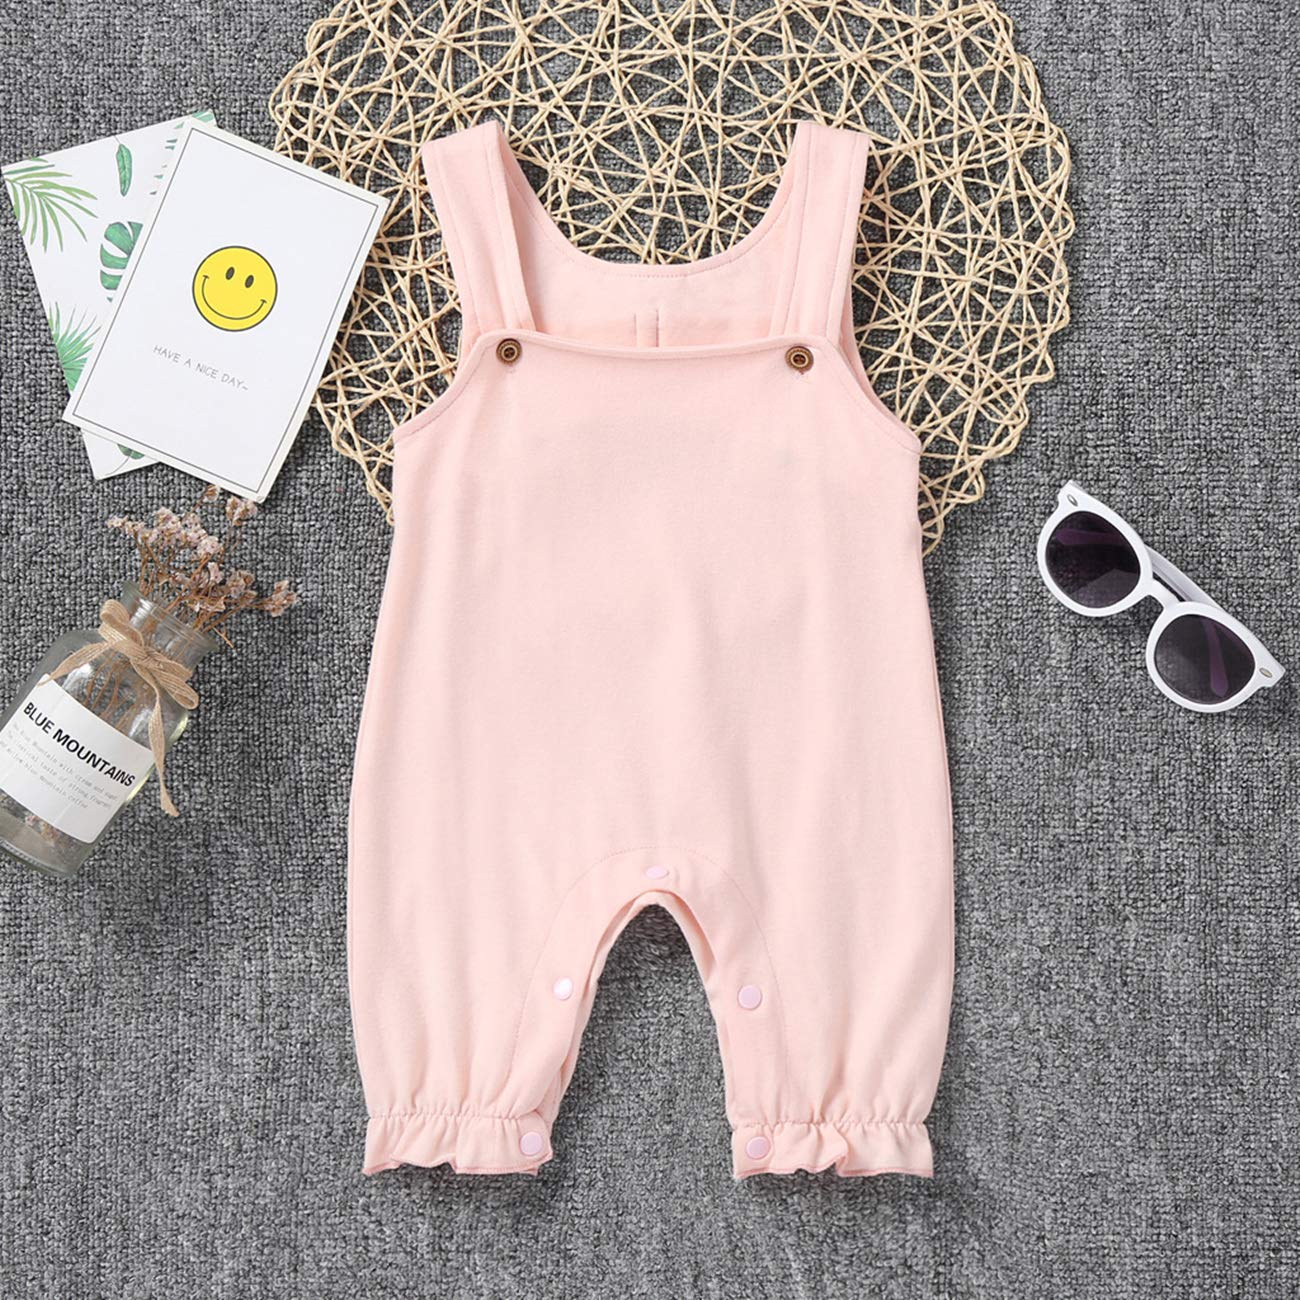 AICSOLL Baby Infant Girl Cotton Jumpsuit Romper Pajamas Clothes Summer Outfits with White Angel Wings